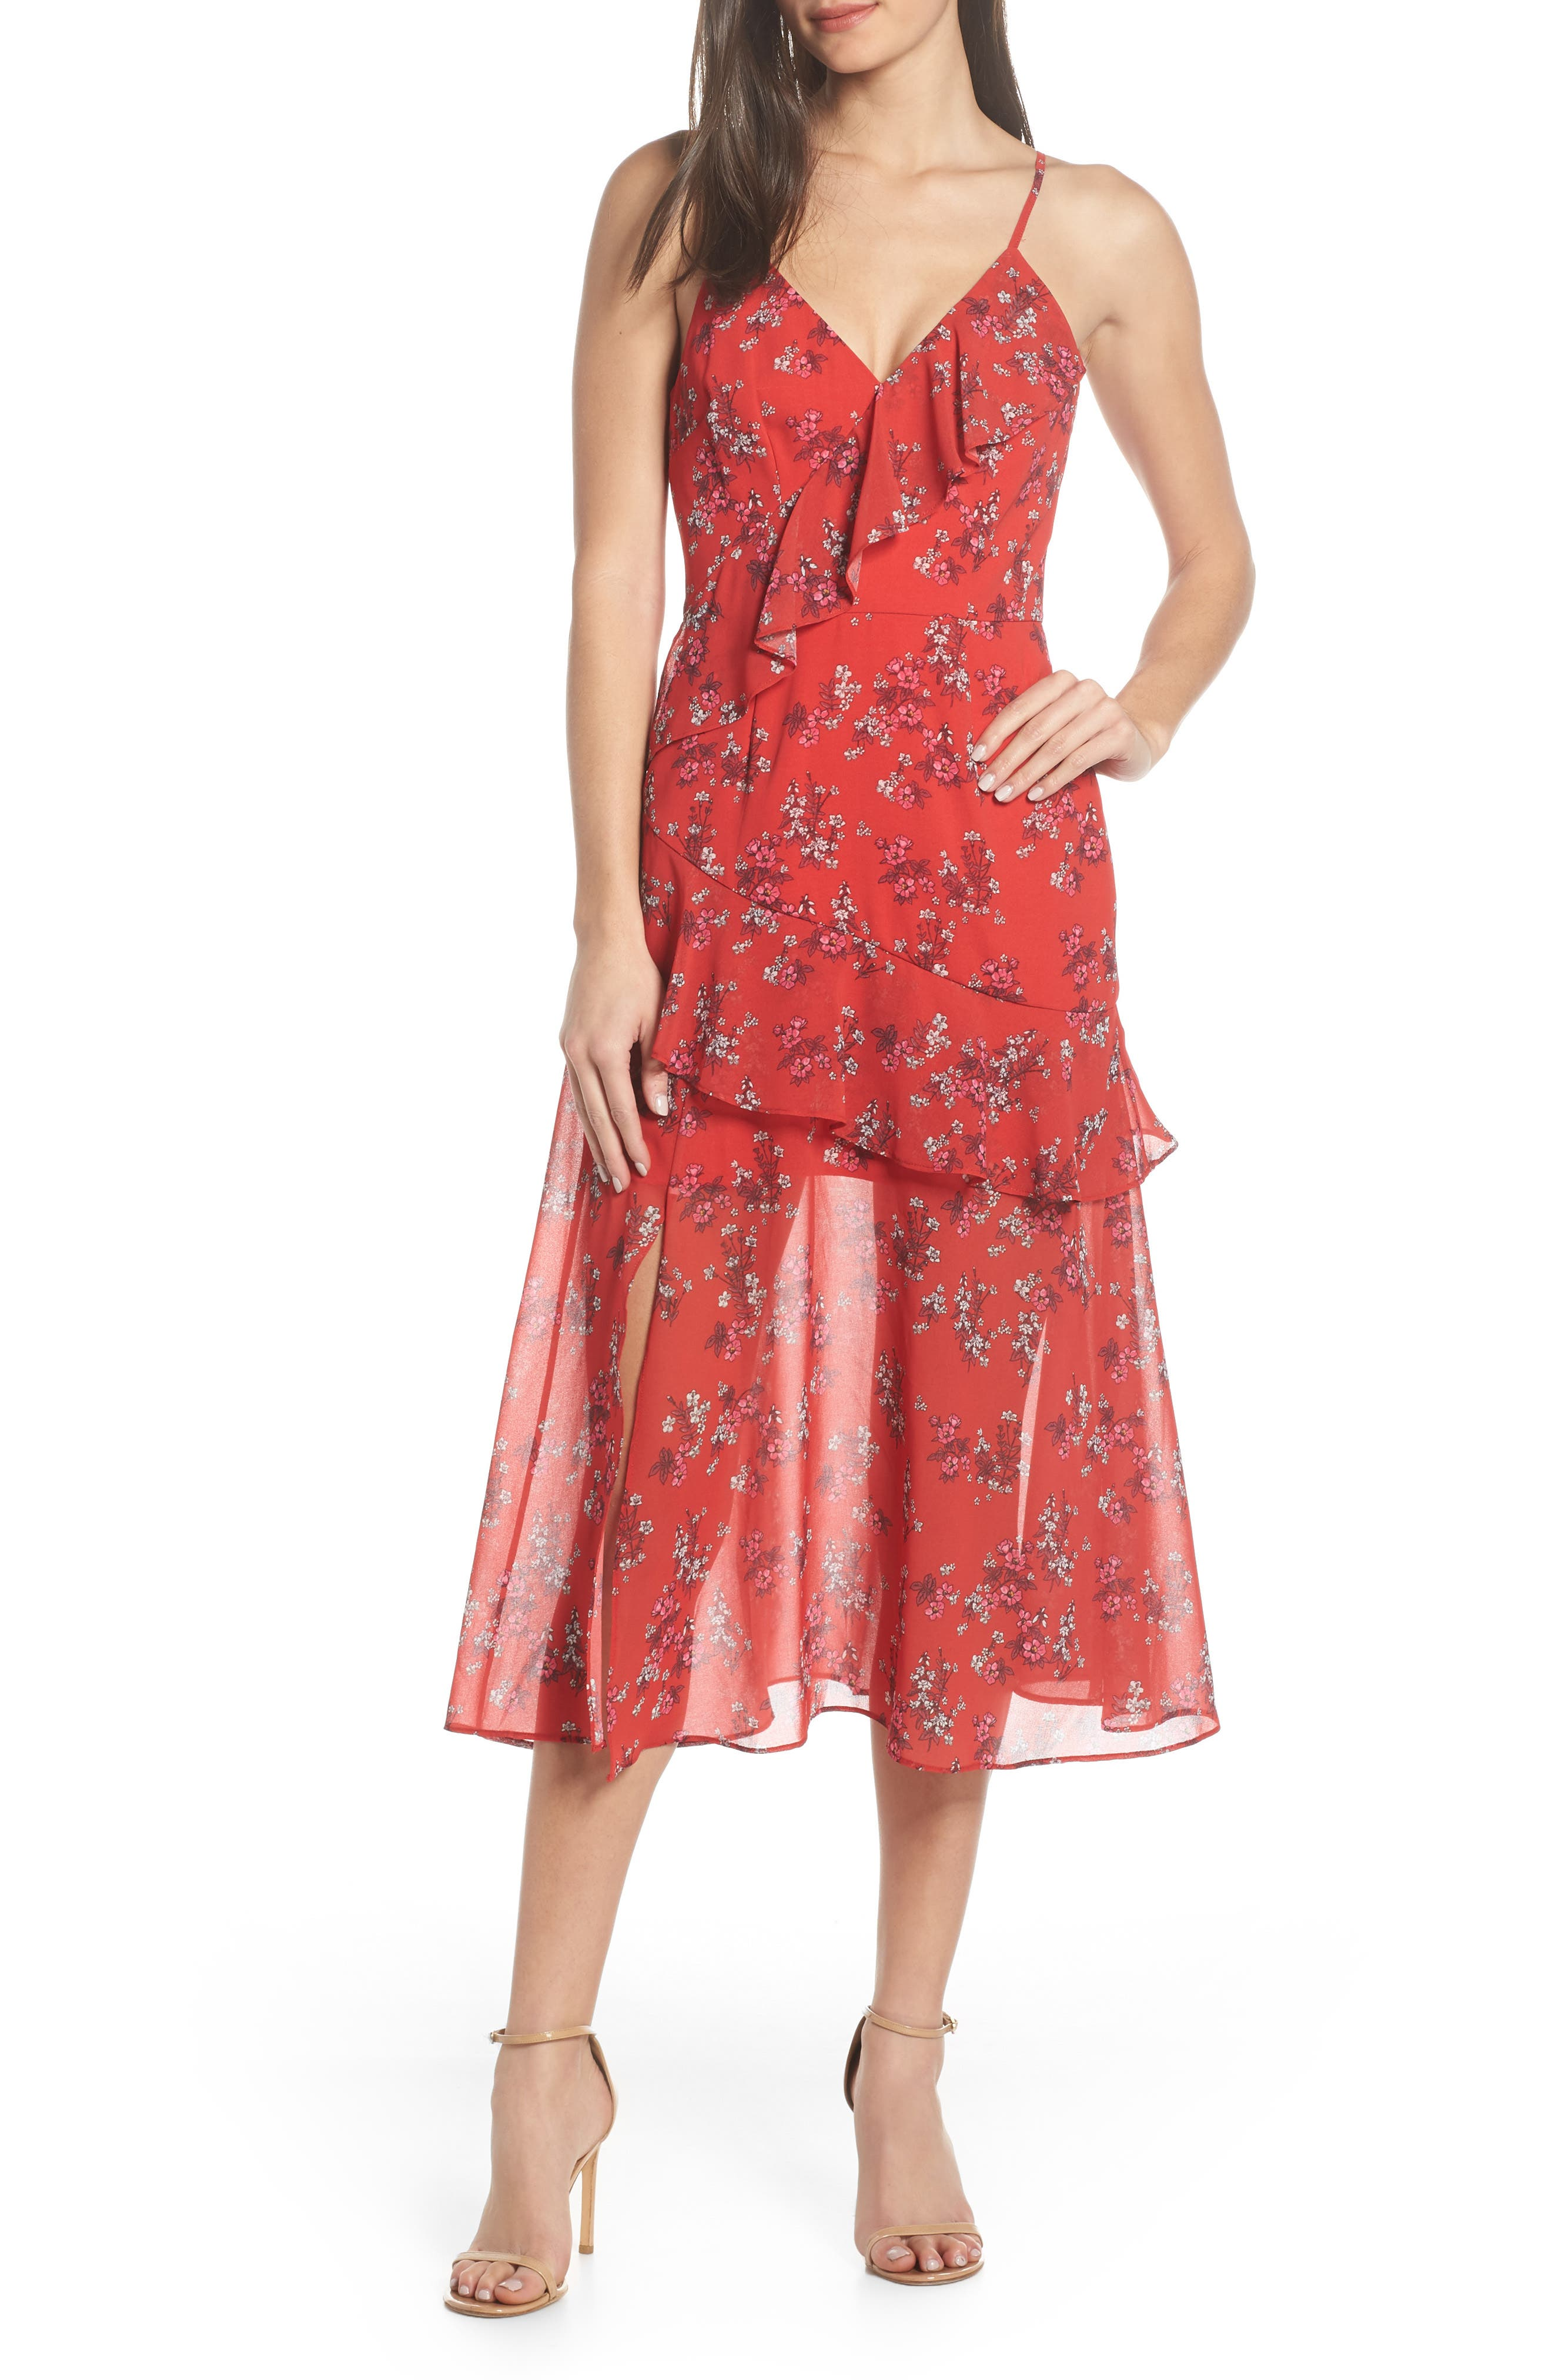 KEEPSAKE THE LABEL Heart & Soul Ruffle Detail Tea Length Dress, Main, color, SMALL RED FLORAL